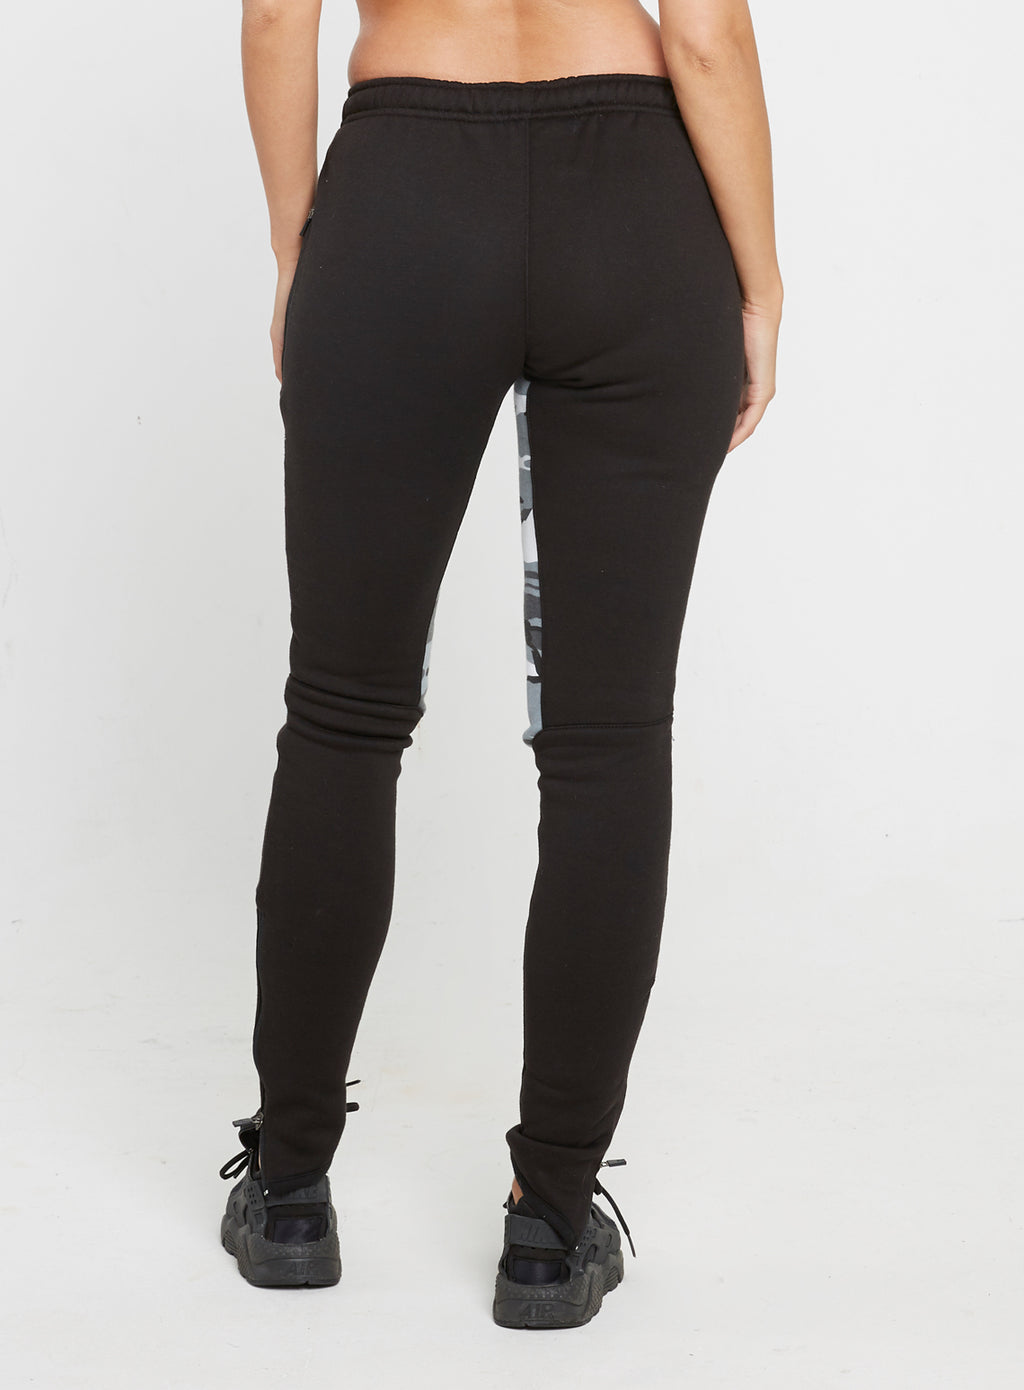 Gym Monkee - Ladies Black and Camo Joggers REAR